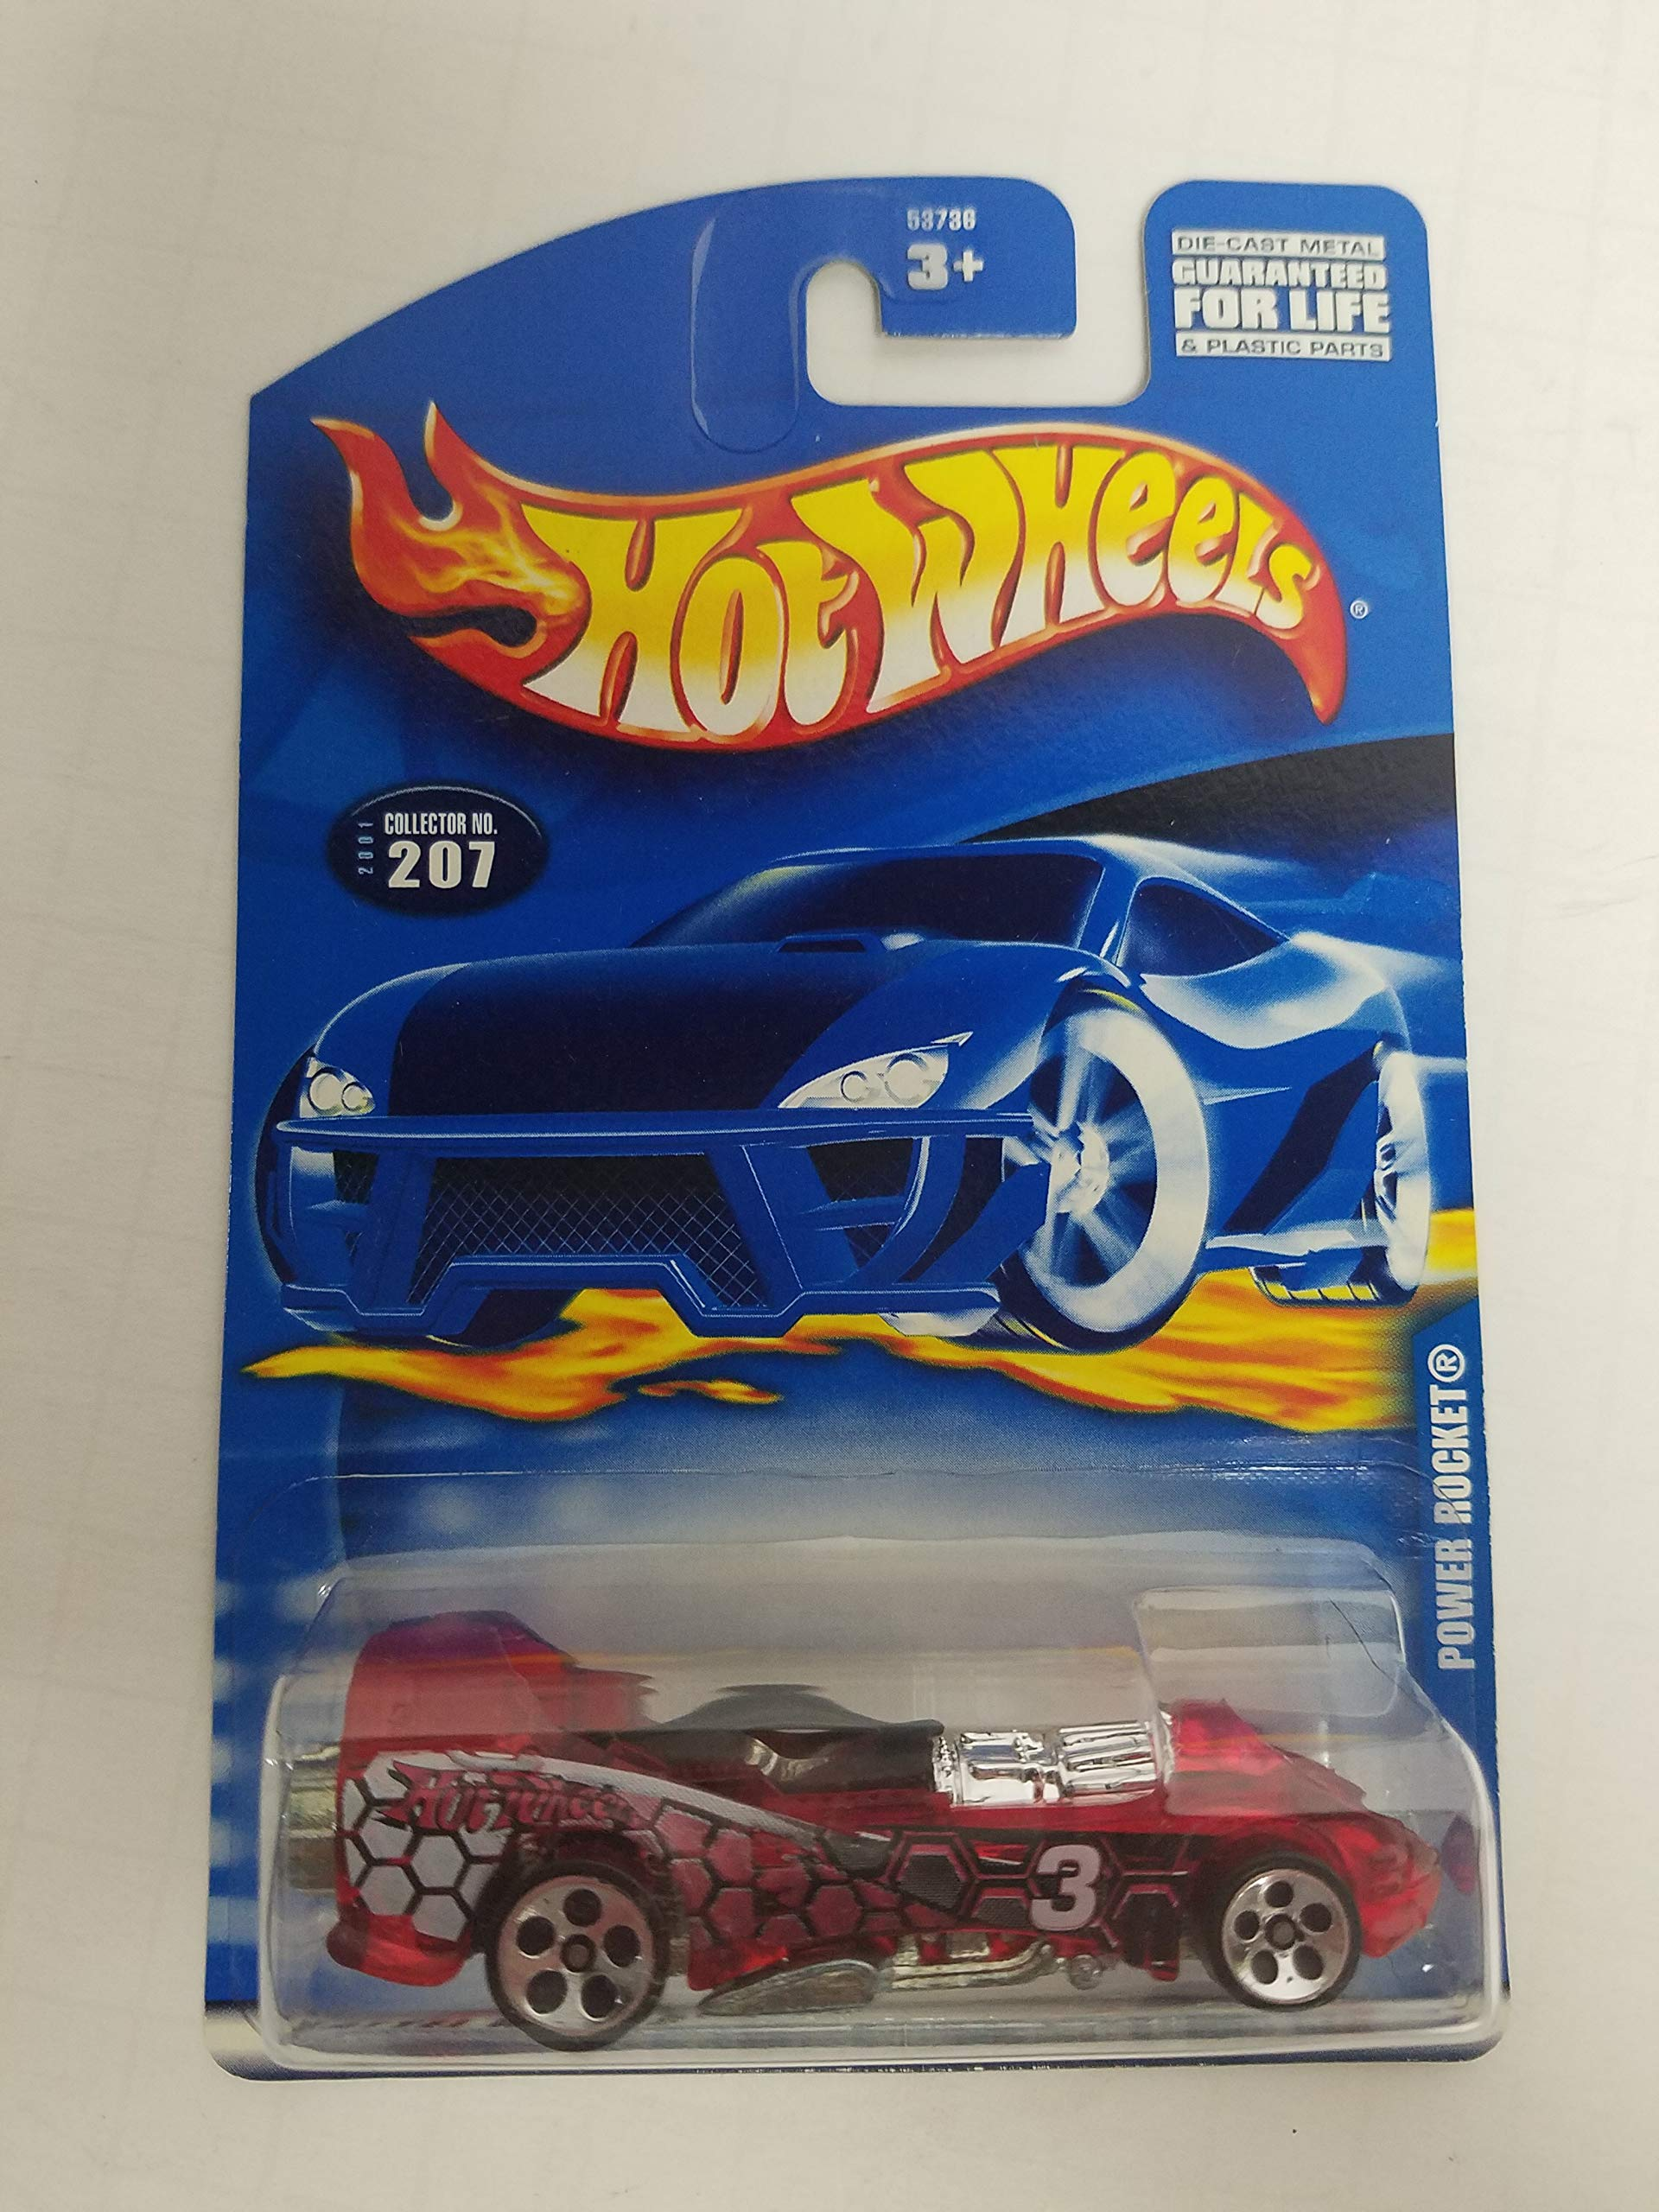 POWER ROCKET Hot Wheels 2001 diecast 1/64 scale car No. 207